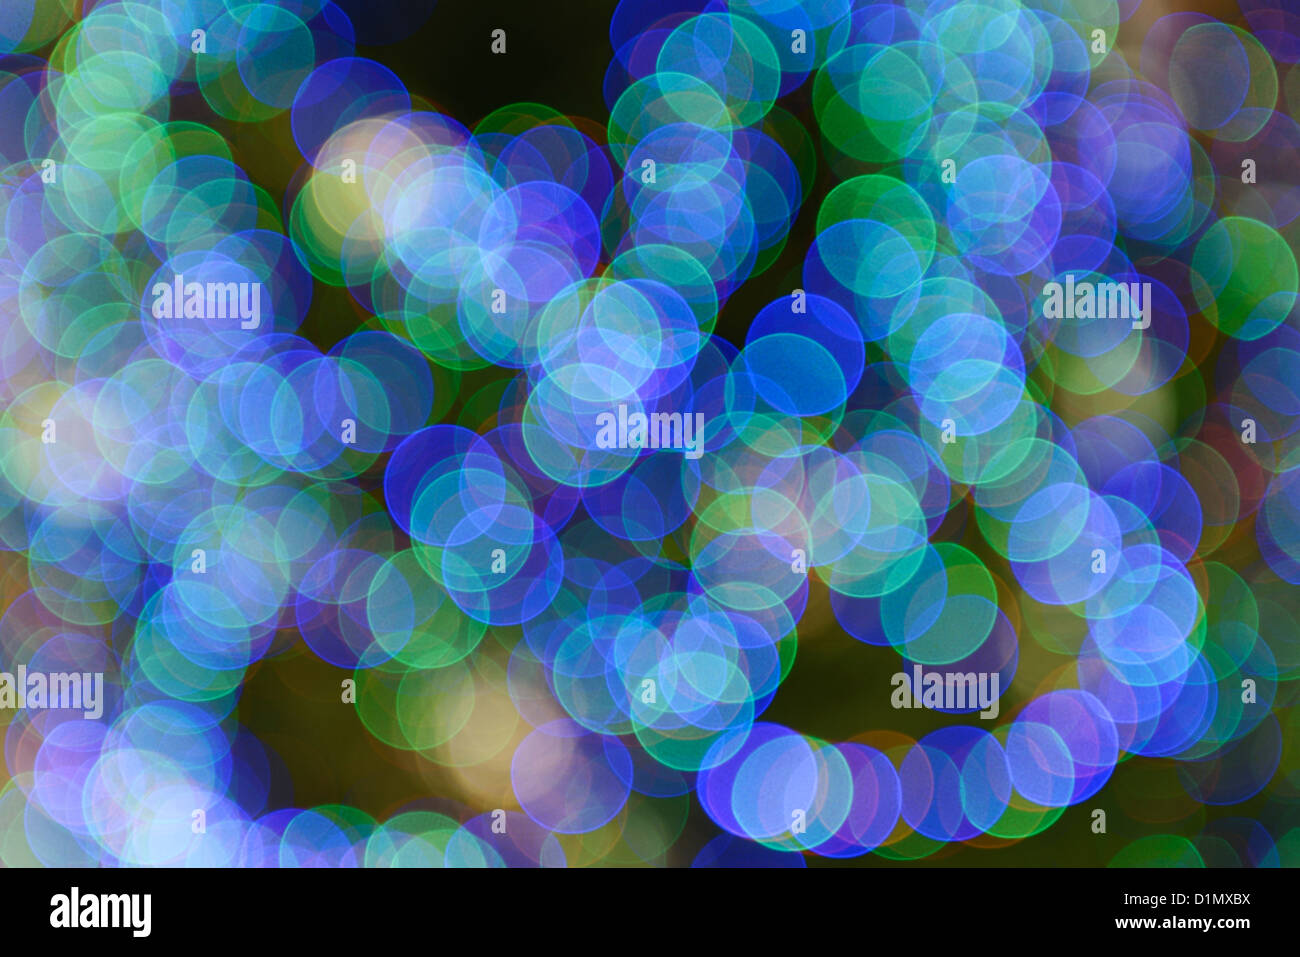 Voyants de couleur motif abstrait Photo Stock